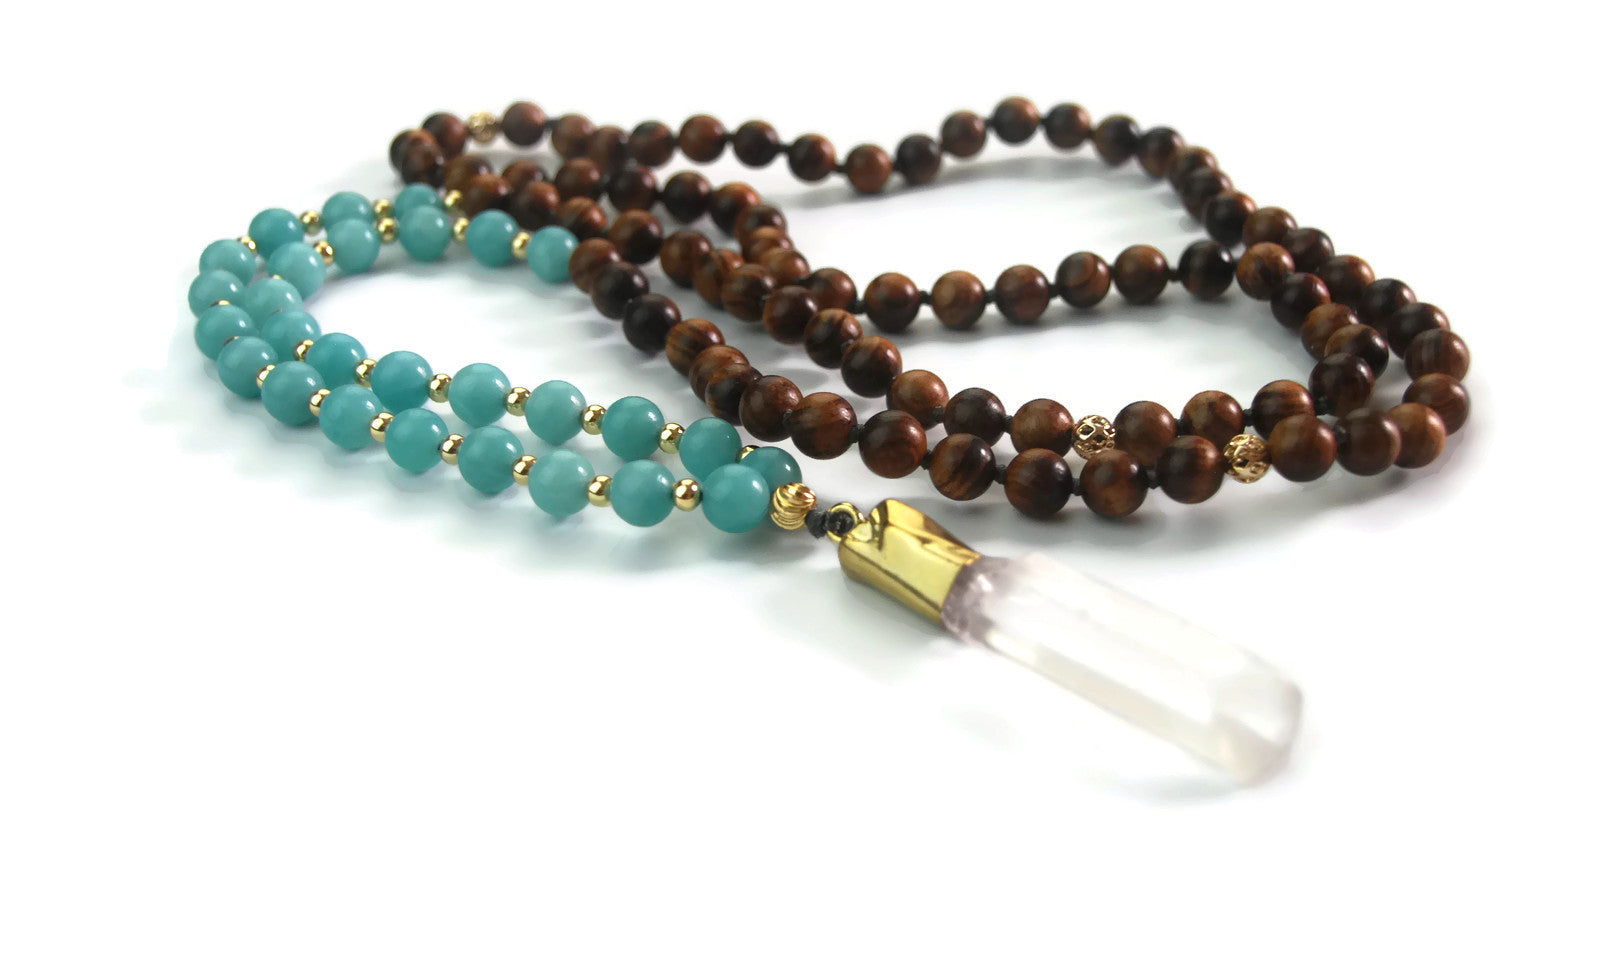 Enlightenment Line 8mm Pear Wood Mozambique Amazonite Crystal Quartz Pendant 24k Gold Knotted 108 Meditation Mala Necklace Throat Chakra Draft